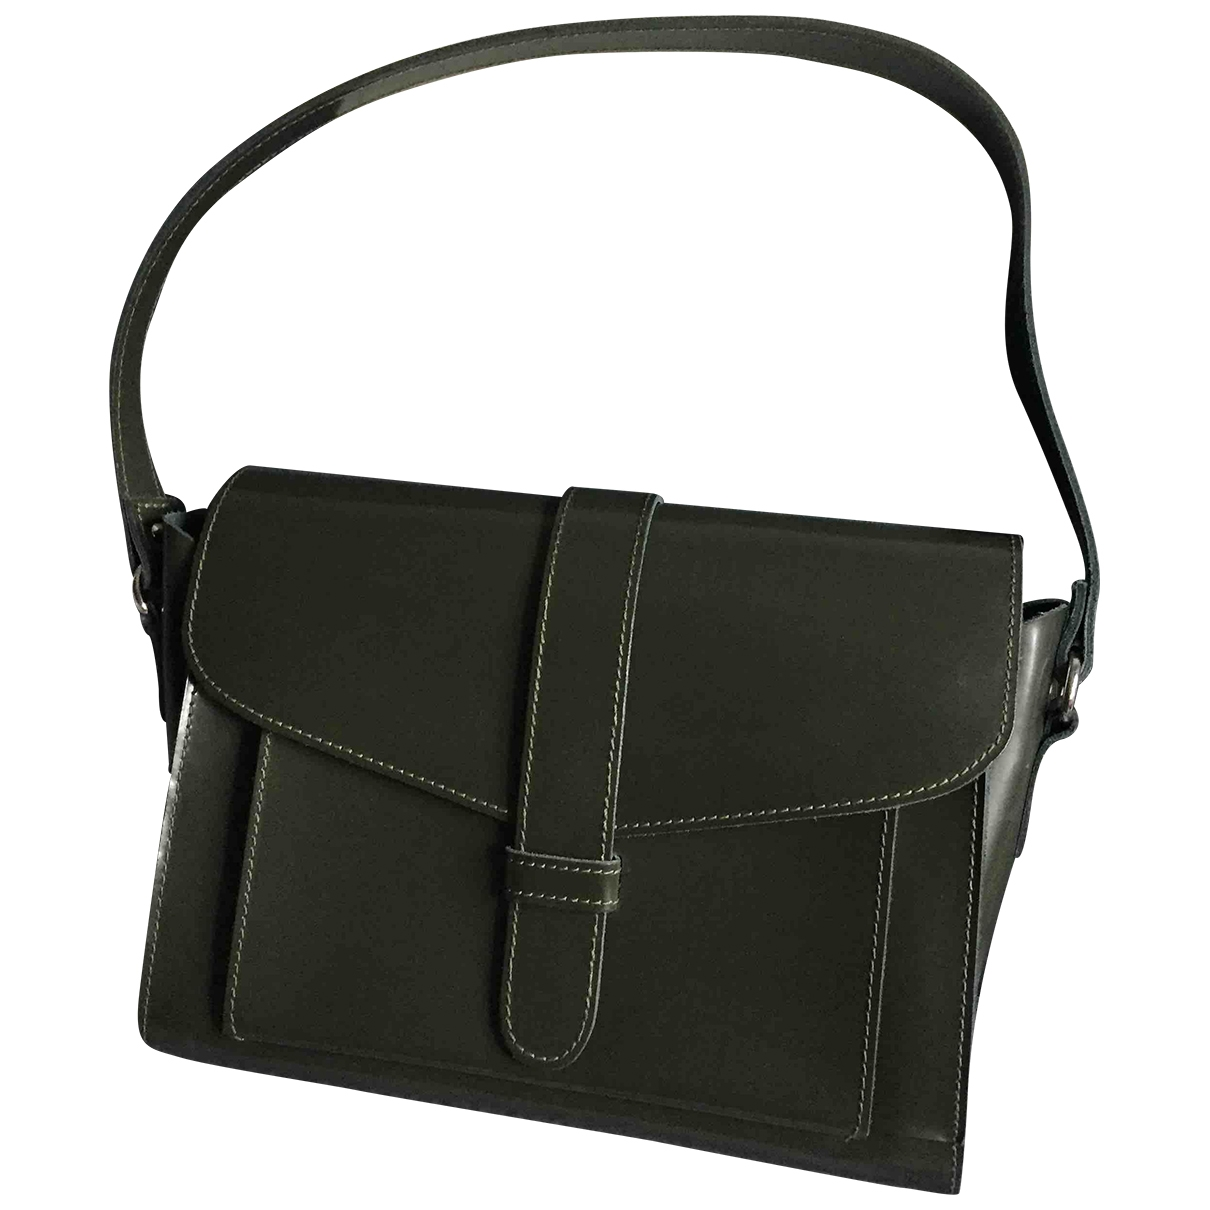 Marni \N Khaki Patent leather handbag for Women \N